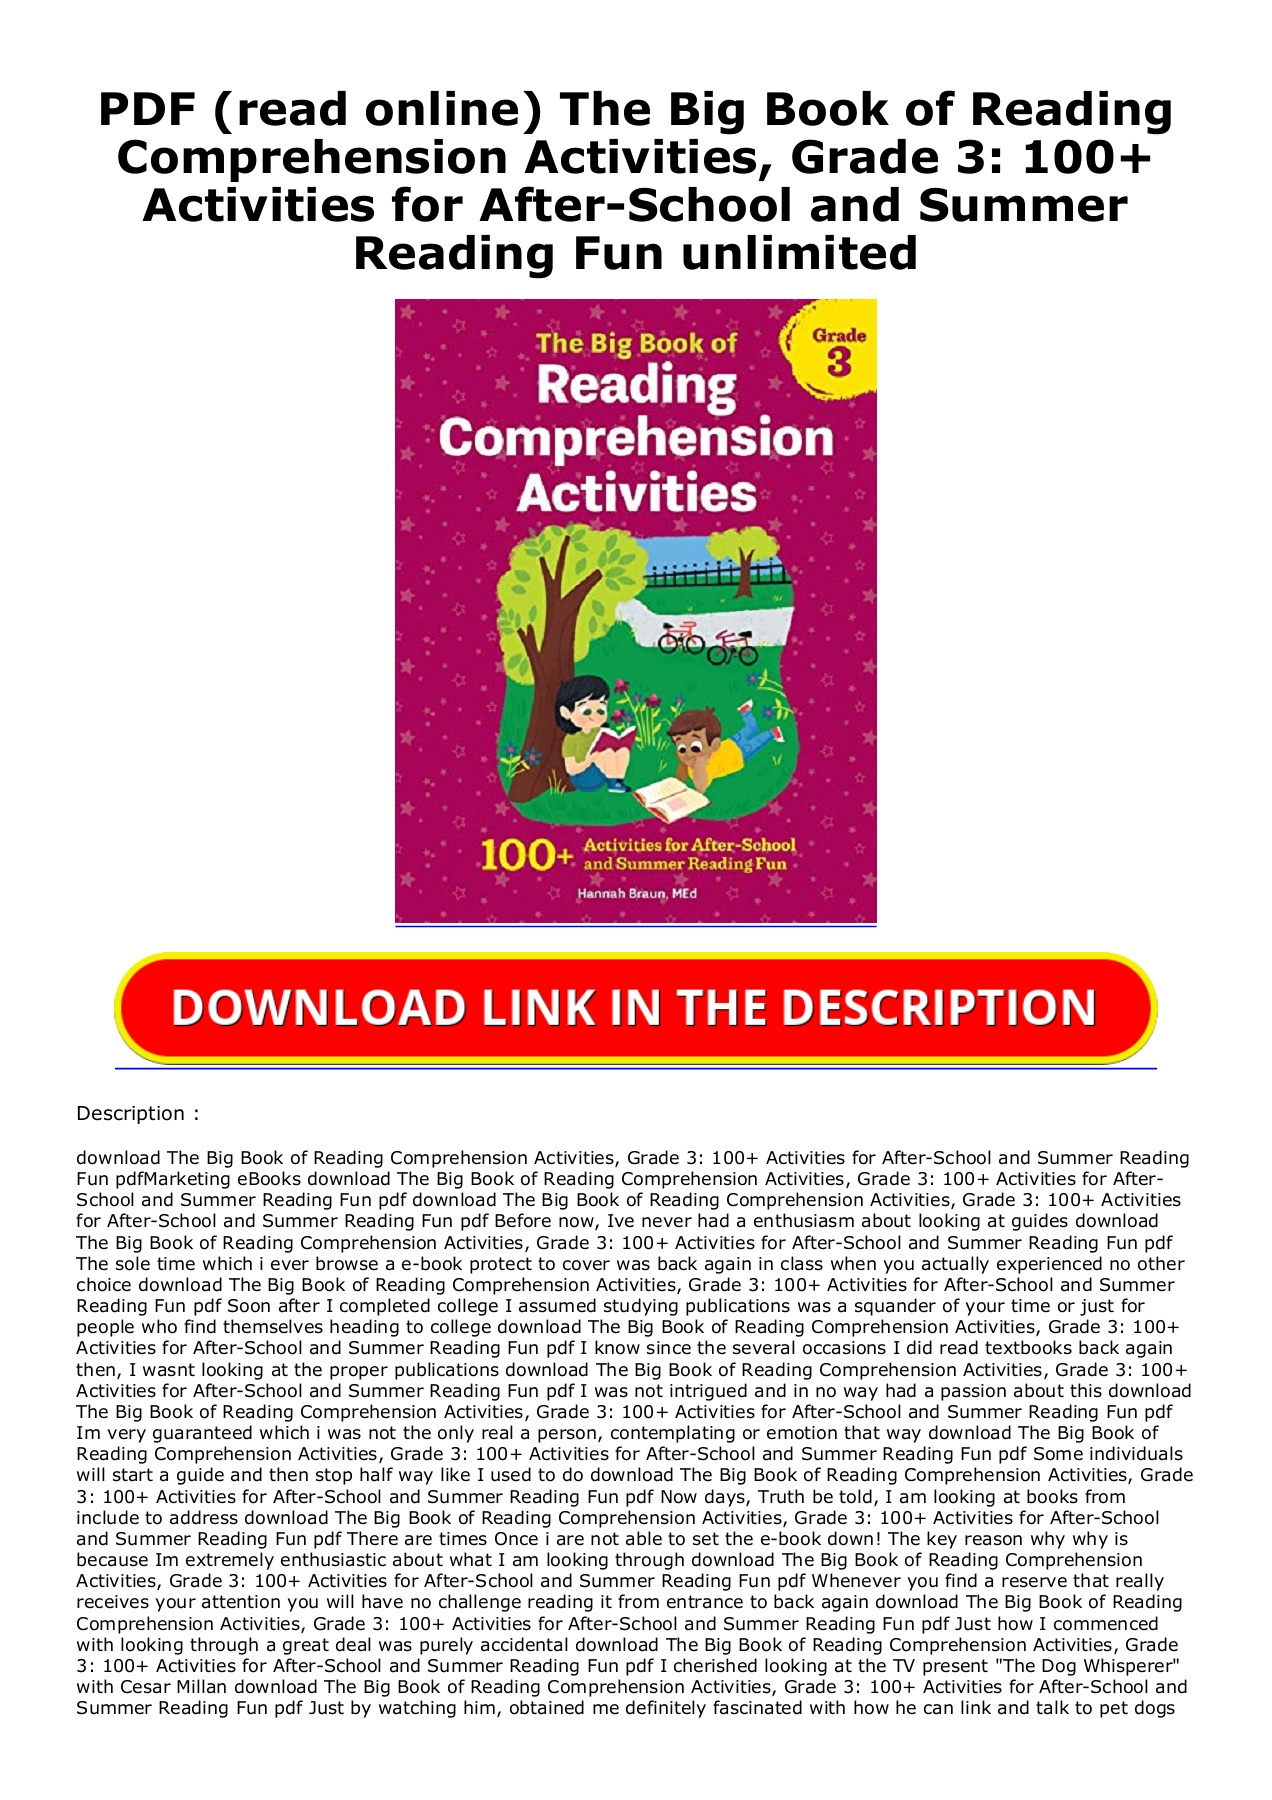 Pdf Read Online The Big Book Of Reading Comprehension Activities Grade 3 100 Activities For After School And Summer Reading Fun Unlimited Flip Ebook Pages 1 2 Anyflip Anyflip Reading comprehension college pdf